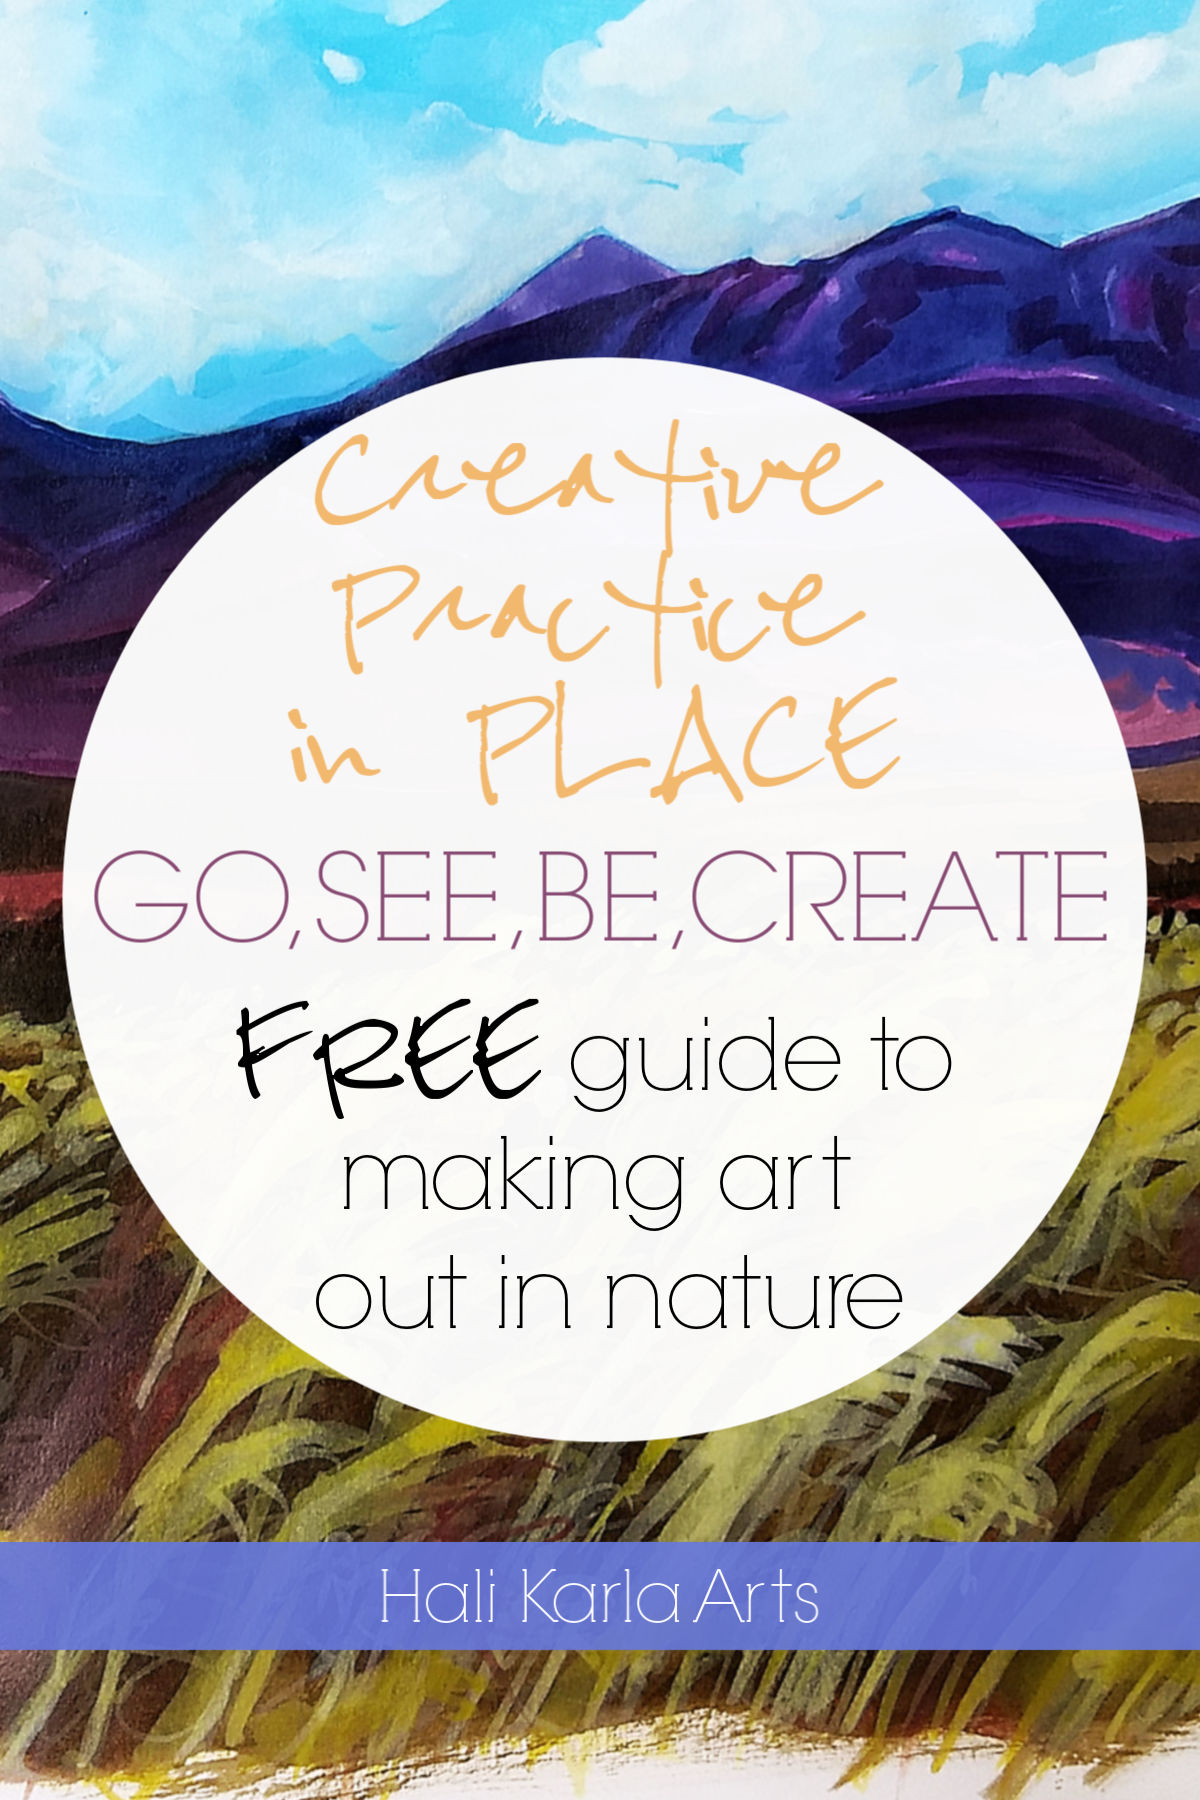 Free guide for exploring your Creative Practice outside - no plein air or art experience required. (Hali Karla Arts)